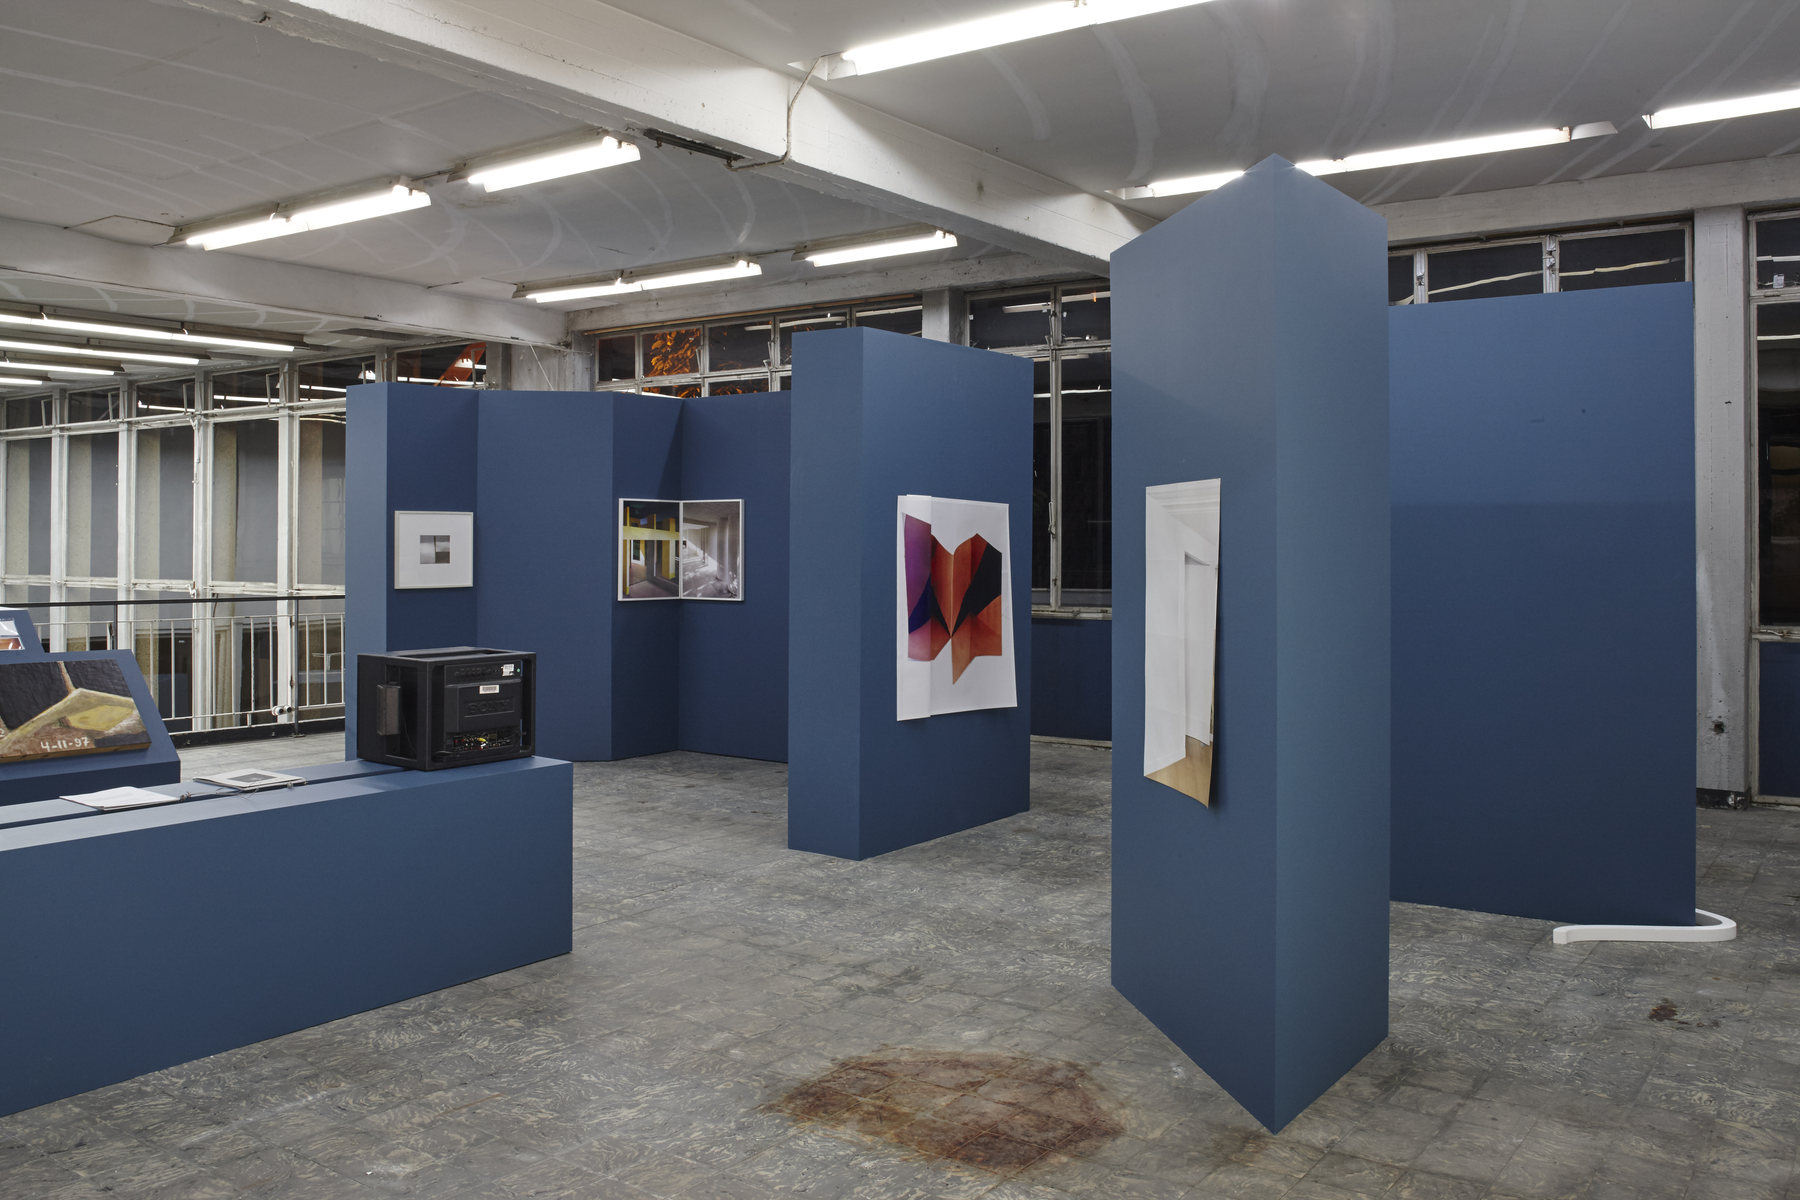 'The Corner Show', installation view, Extra City Kunsthal, 2015 © Jan Kempenaers428